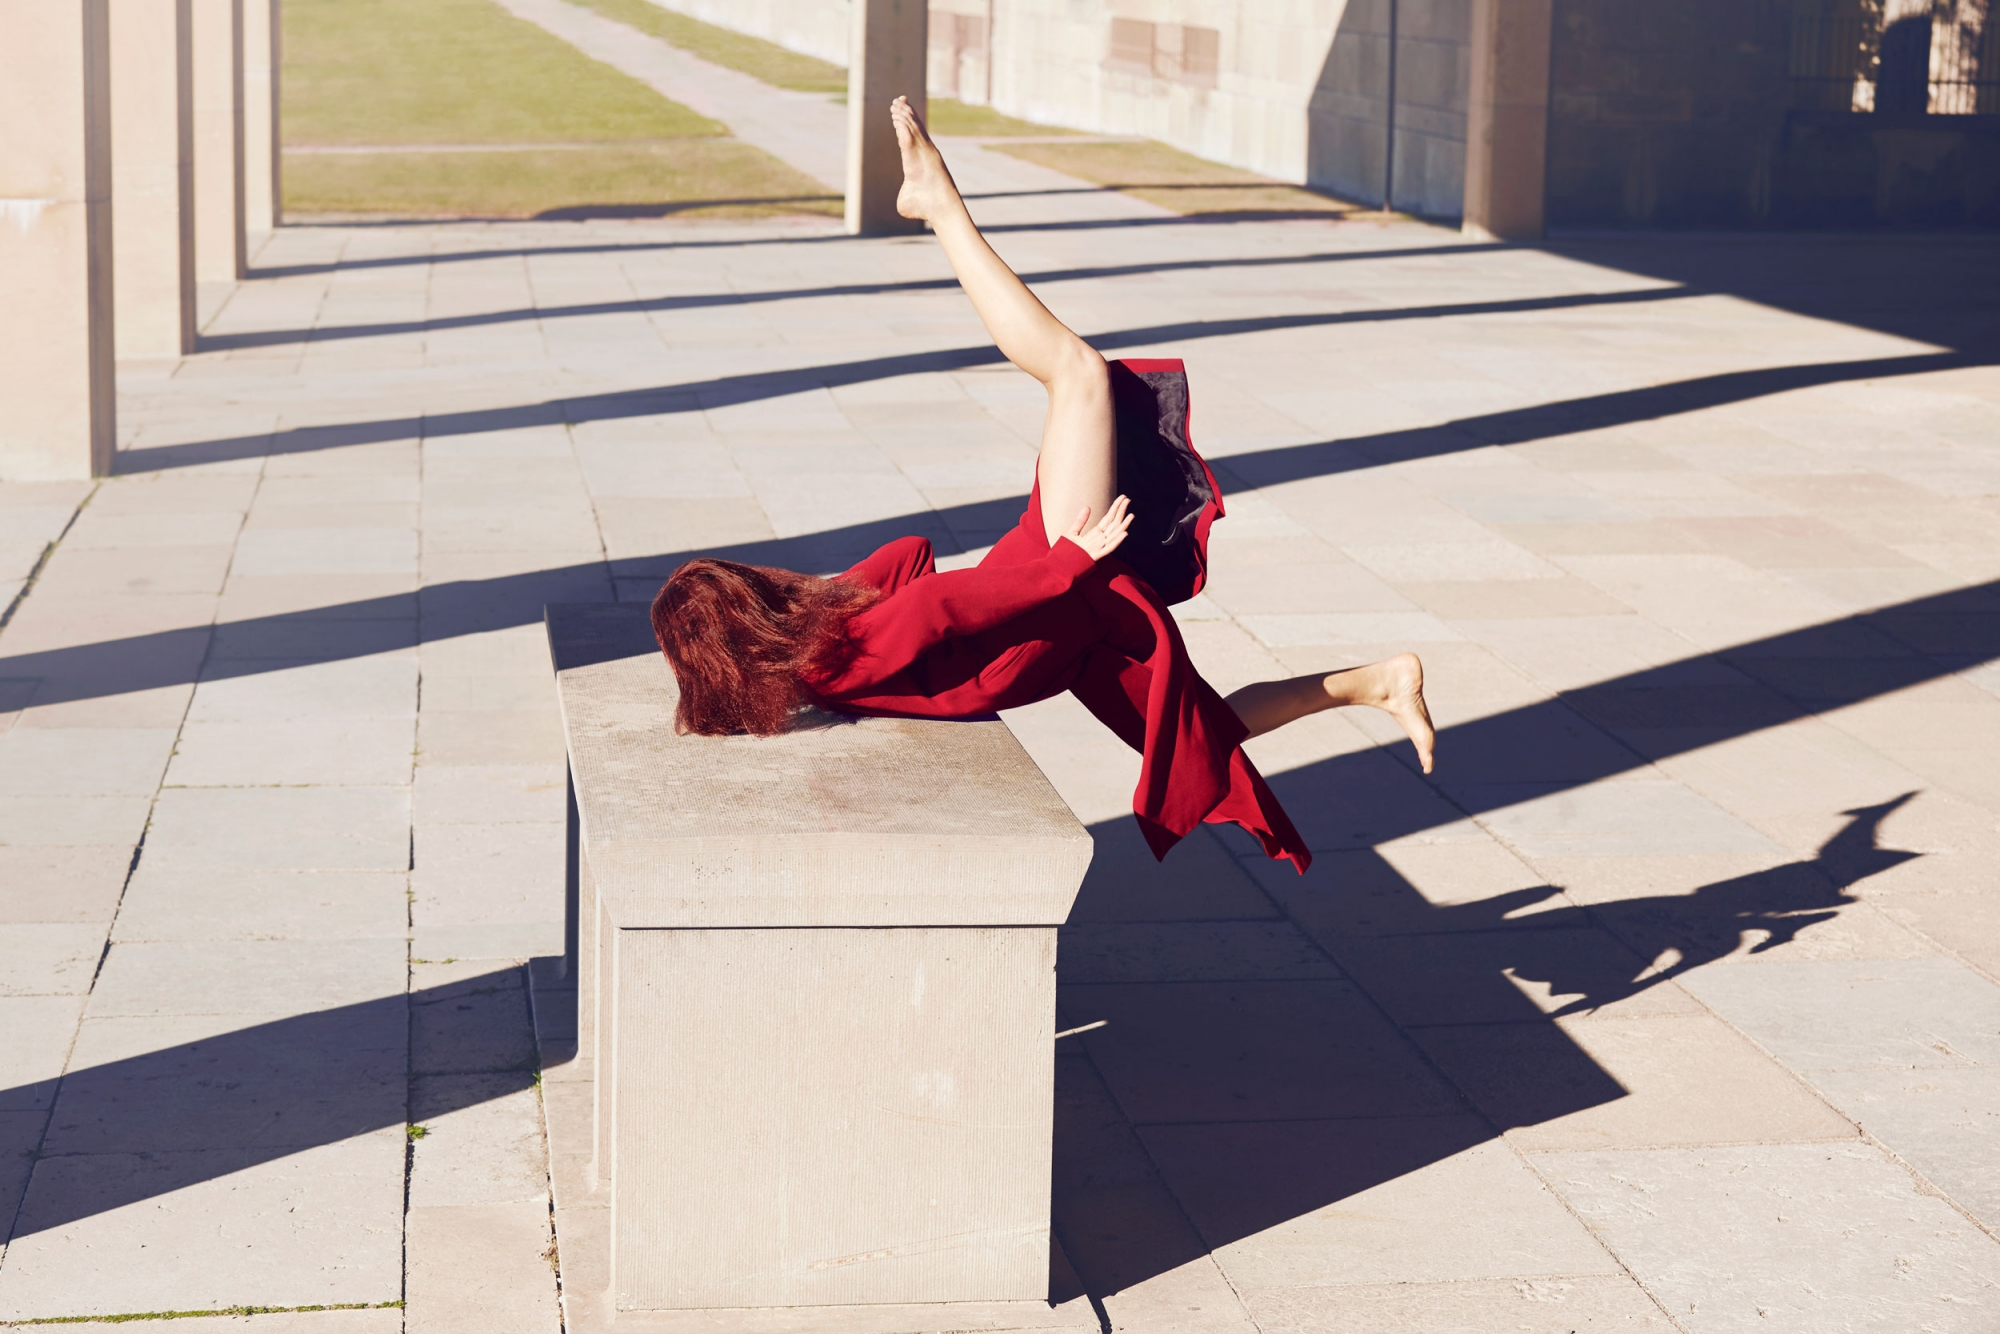 Impressive Fashion Portraits of Models Falling Down (5 pics)